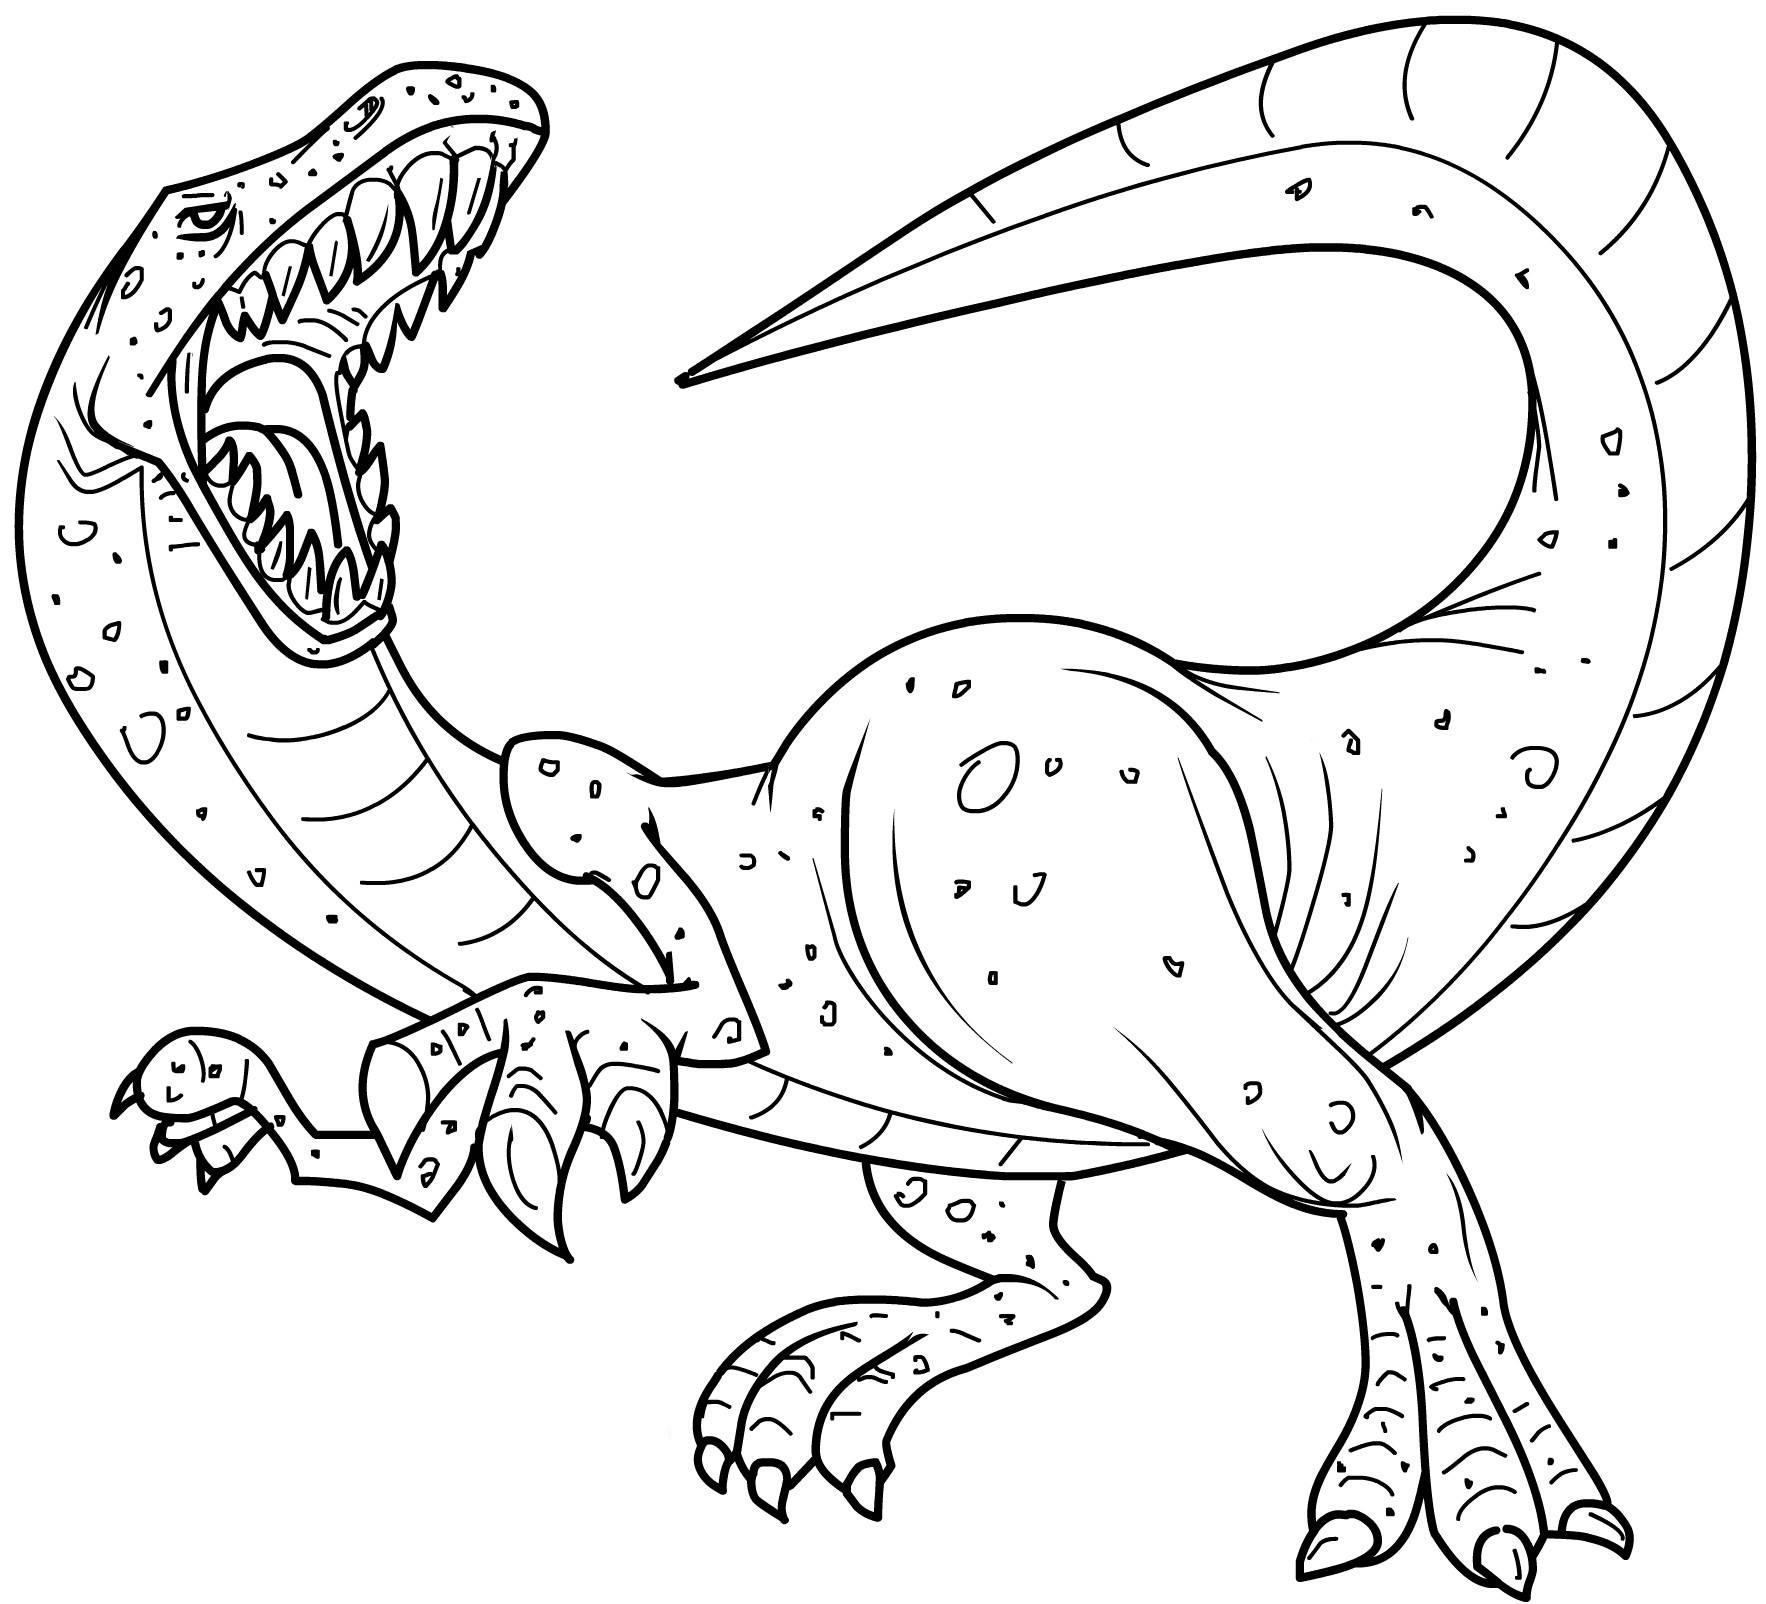 dinosaur pictures to color free printable dinosaur coloring pages for kids cool2bkids dinosaur pictures to color free